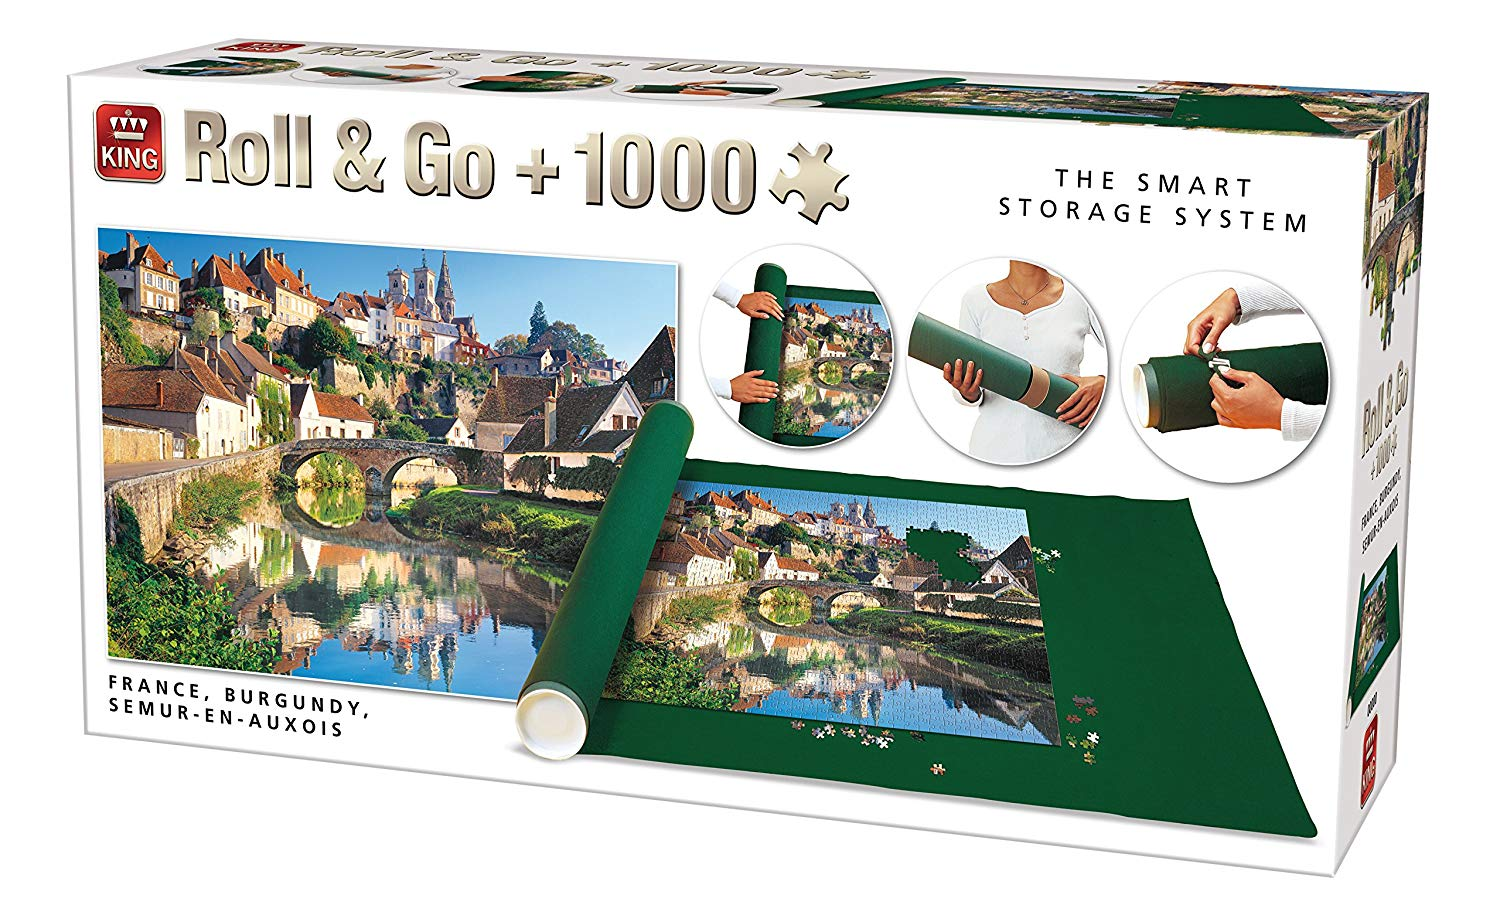 http://data.my-puzzle.fr/king-international-puzzle.134/king-international-roll-go-semur-en-auxois-france-puzzle-1000-pieces.65601-1.fs.jpg